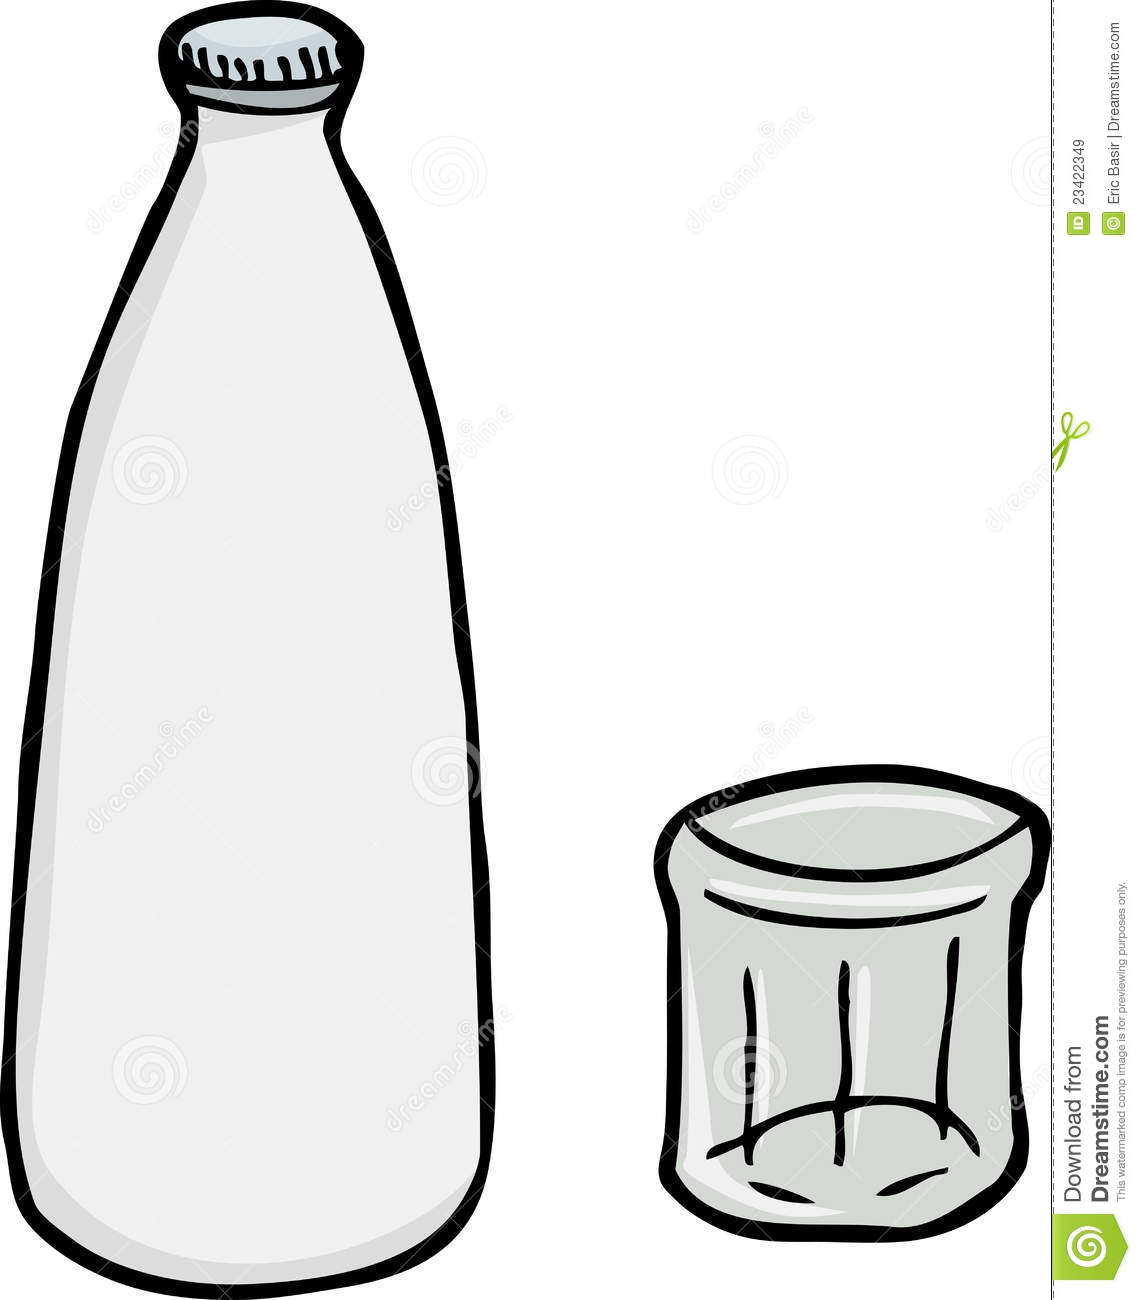 Glass Of Milk Drawing | Free download best Glass Of Milk Drawing on ... vector freeuse stock